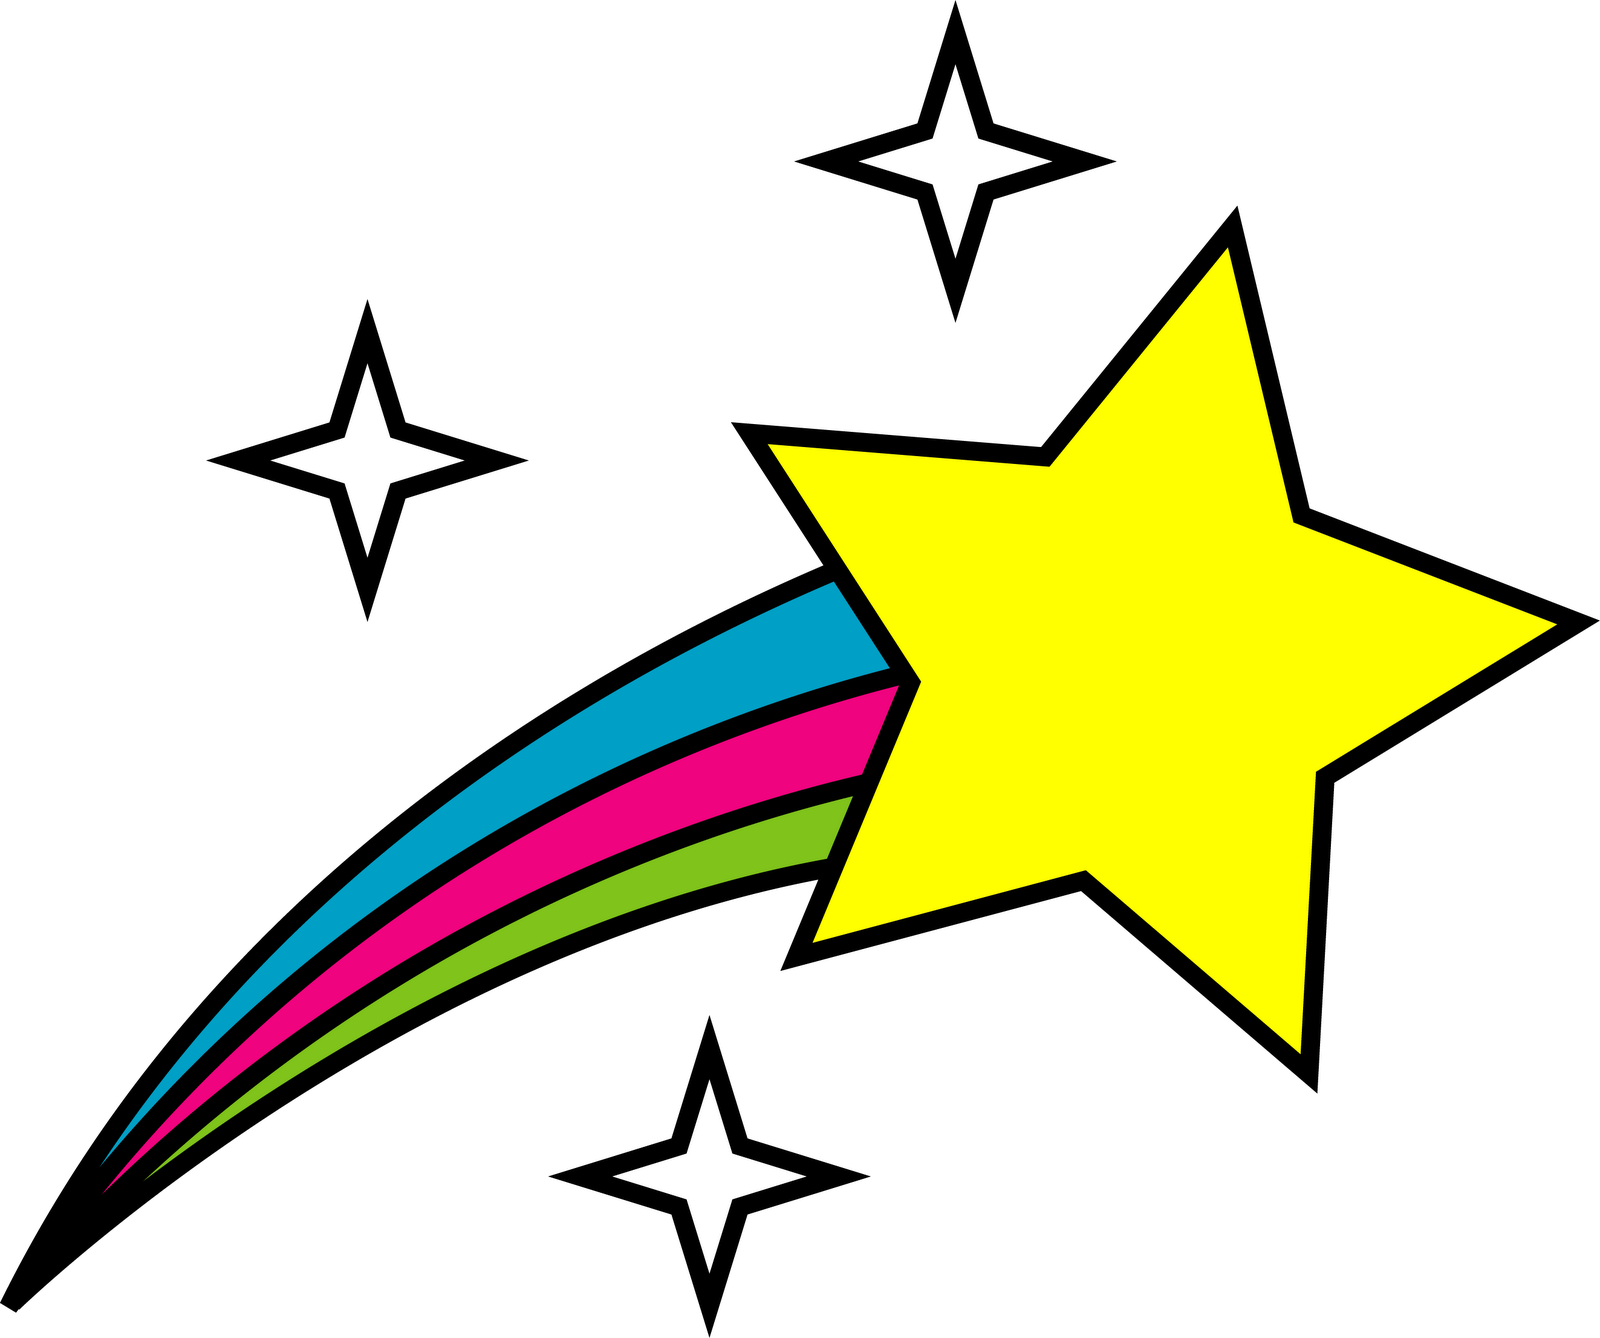 star icon clipart rising